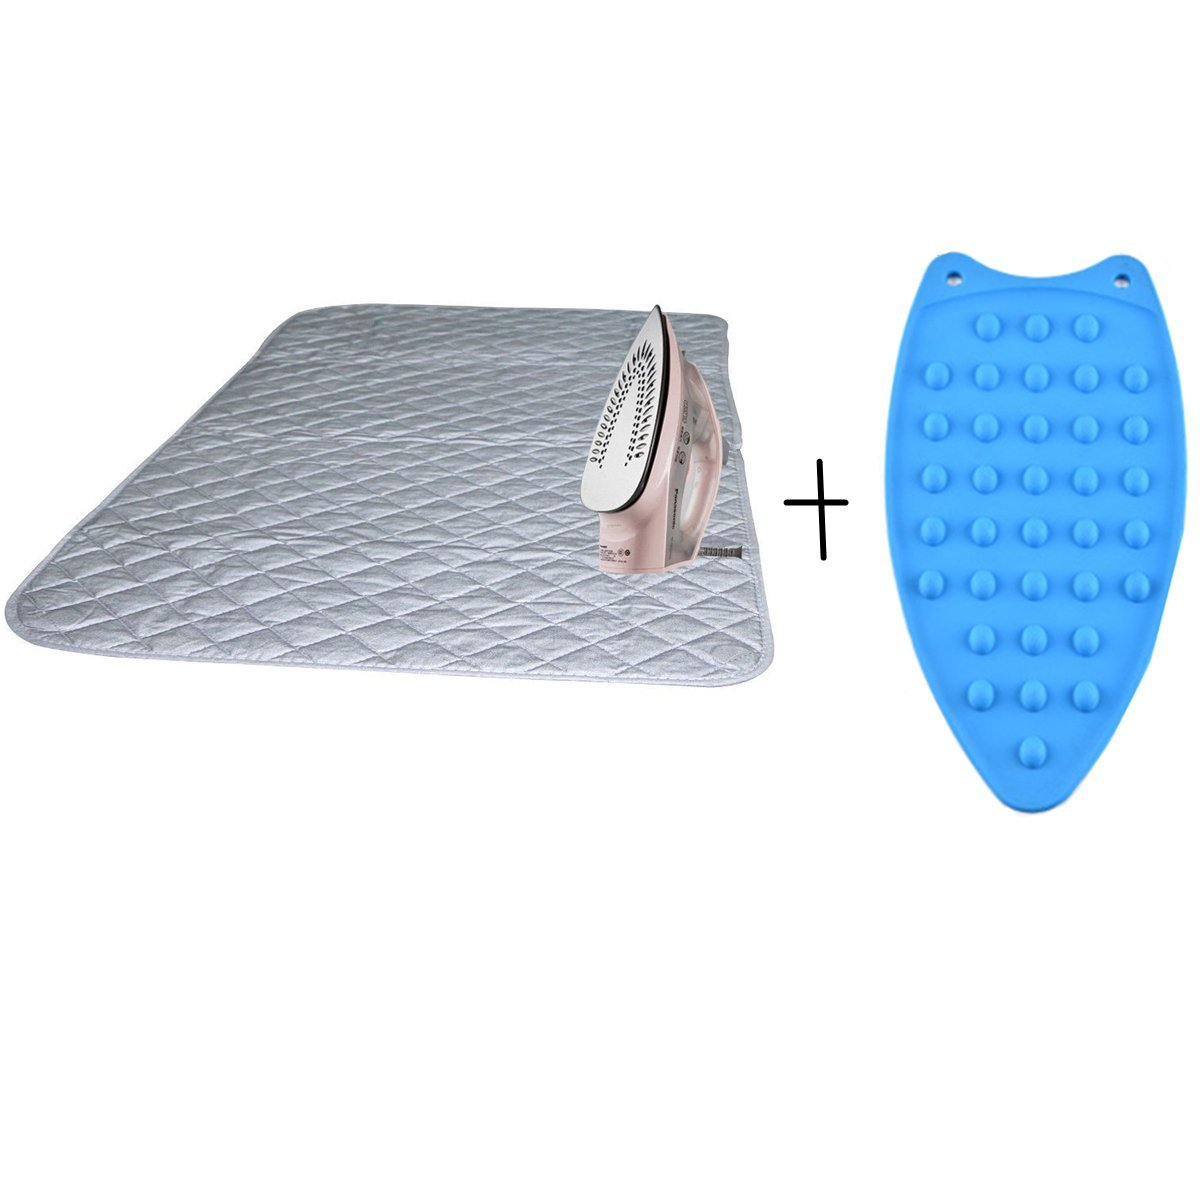 Winloop Portable Travel Ironing Magnetic Blanket Heat Resistant Ironing Magnetic Mat Laundry Machine Cover Top with Gift Silicone Iron Rest Pad for Washer, Dryer, Table,Countertop, Small Ironing Board